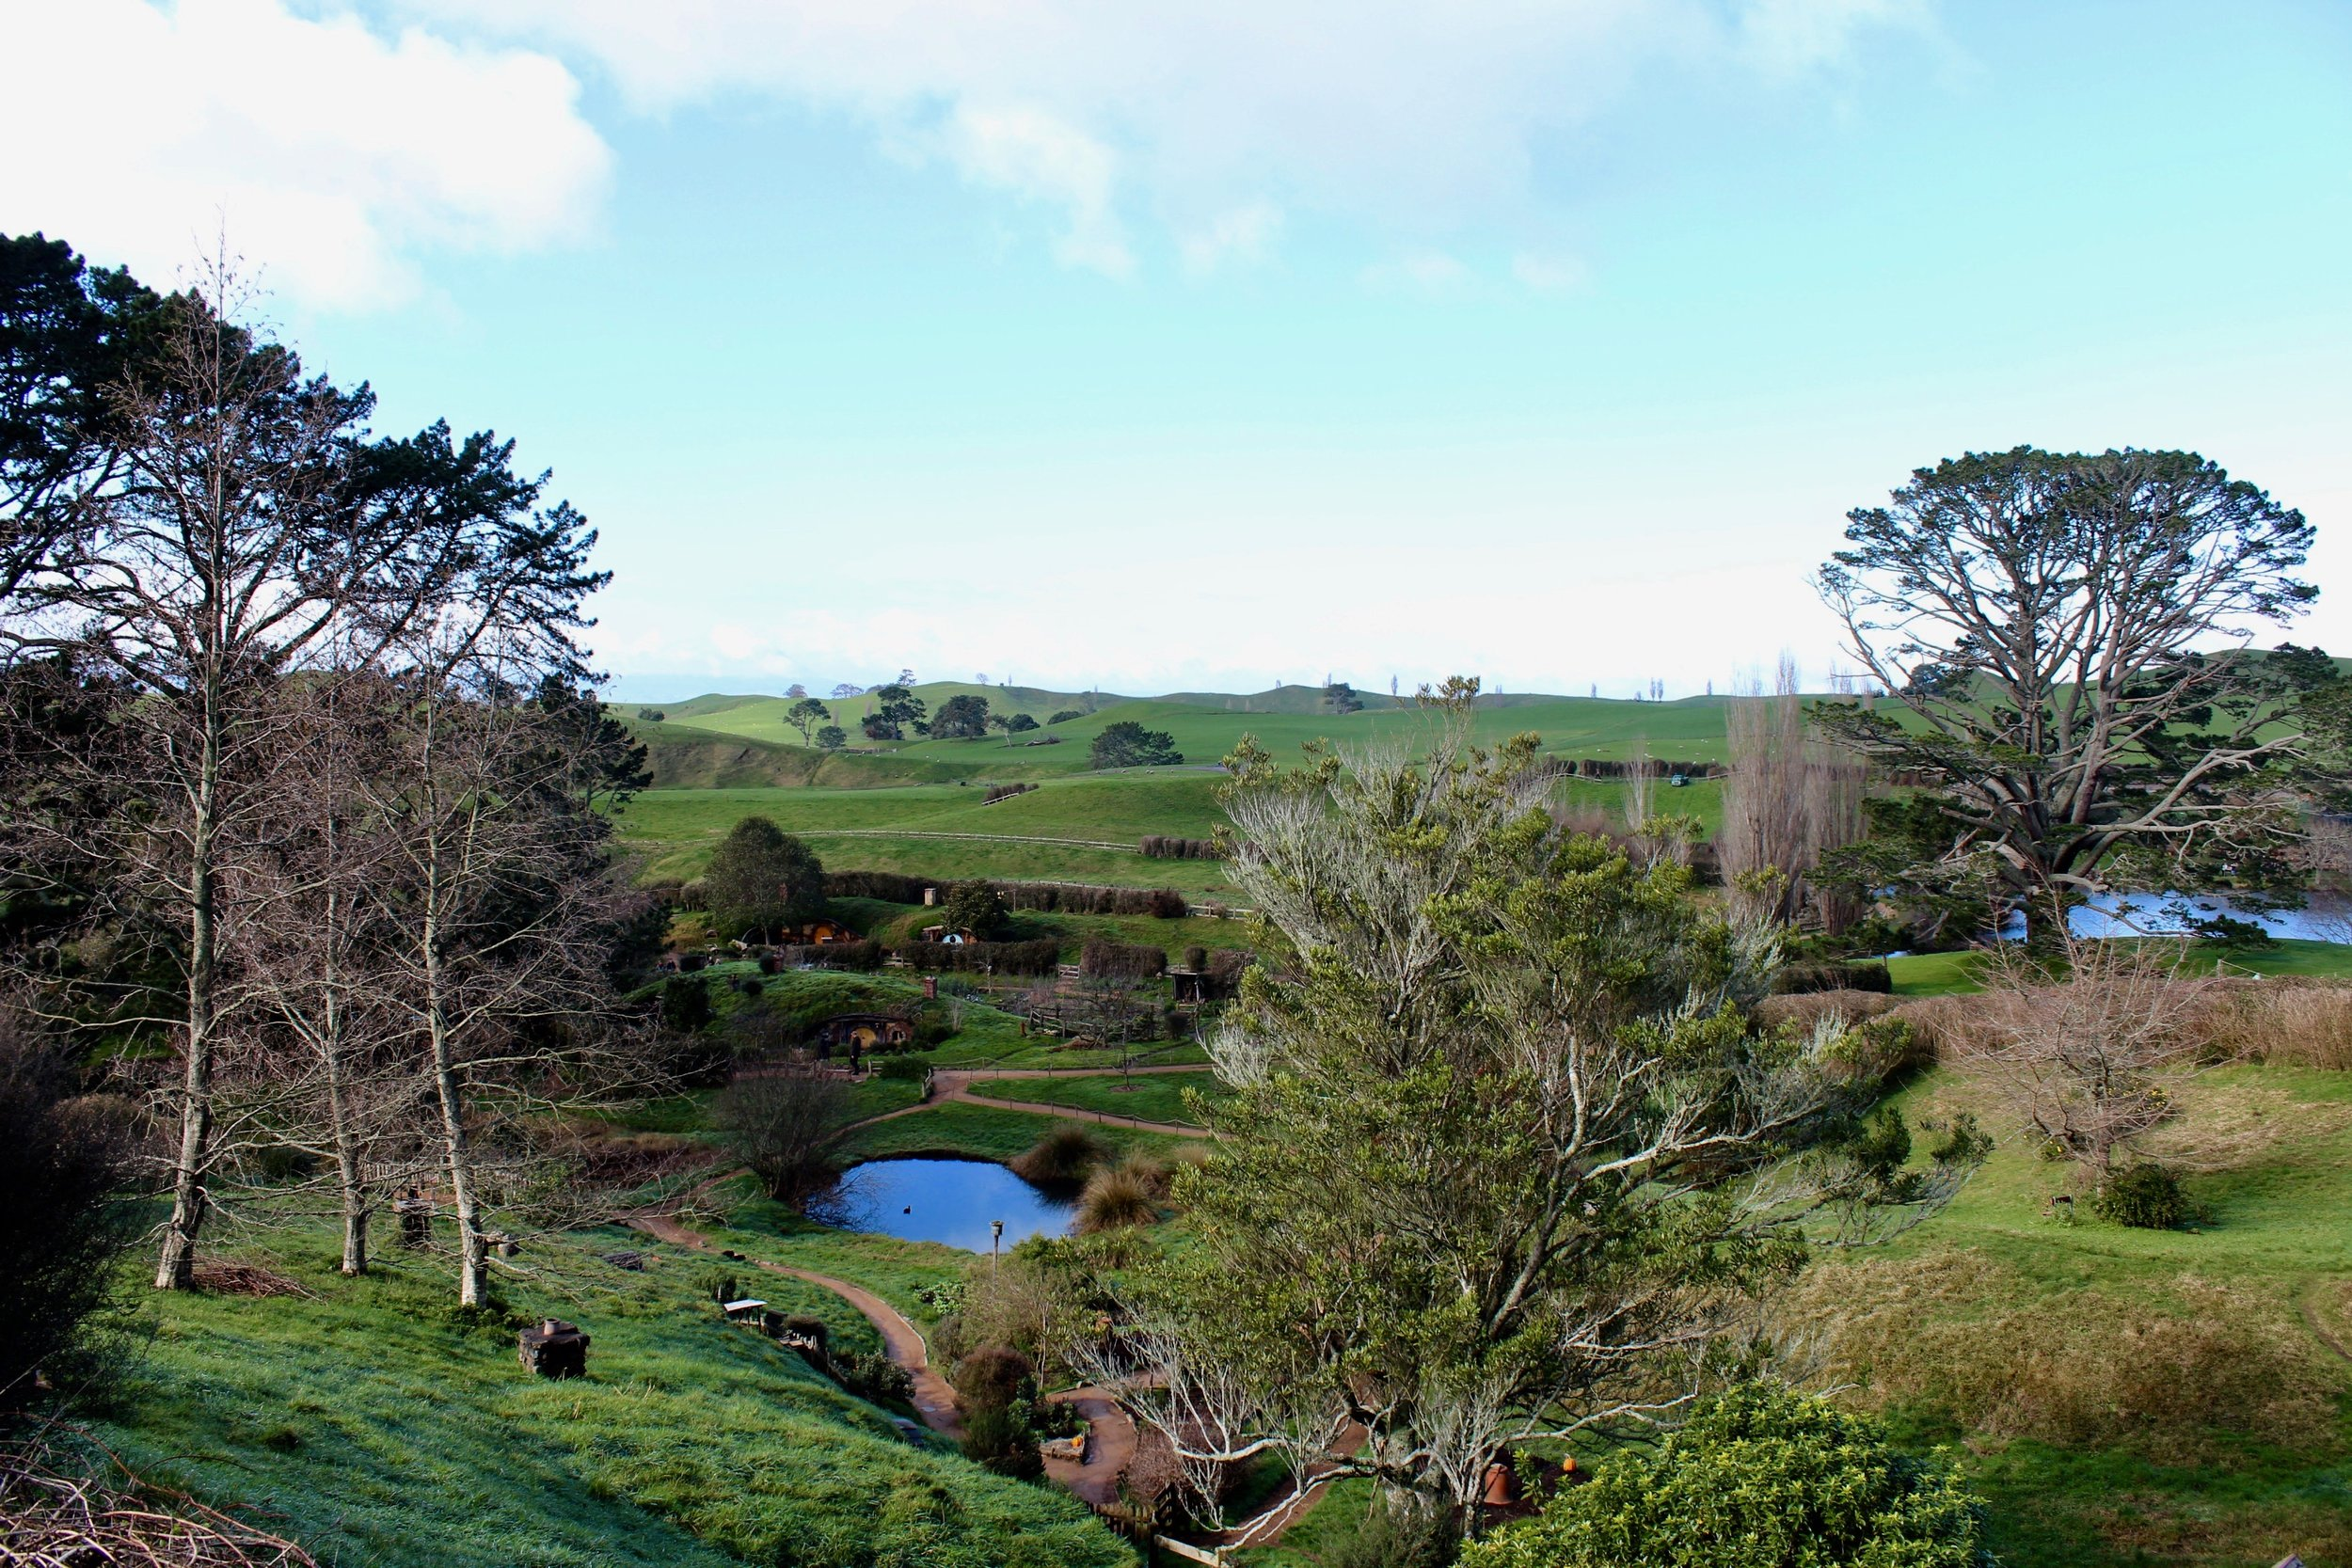 Hobbiton's rolling green hills